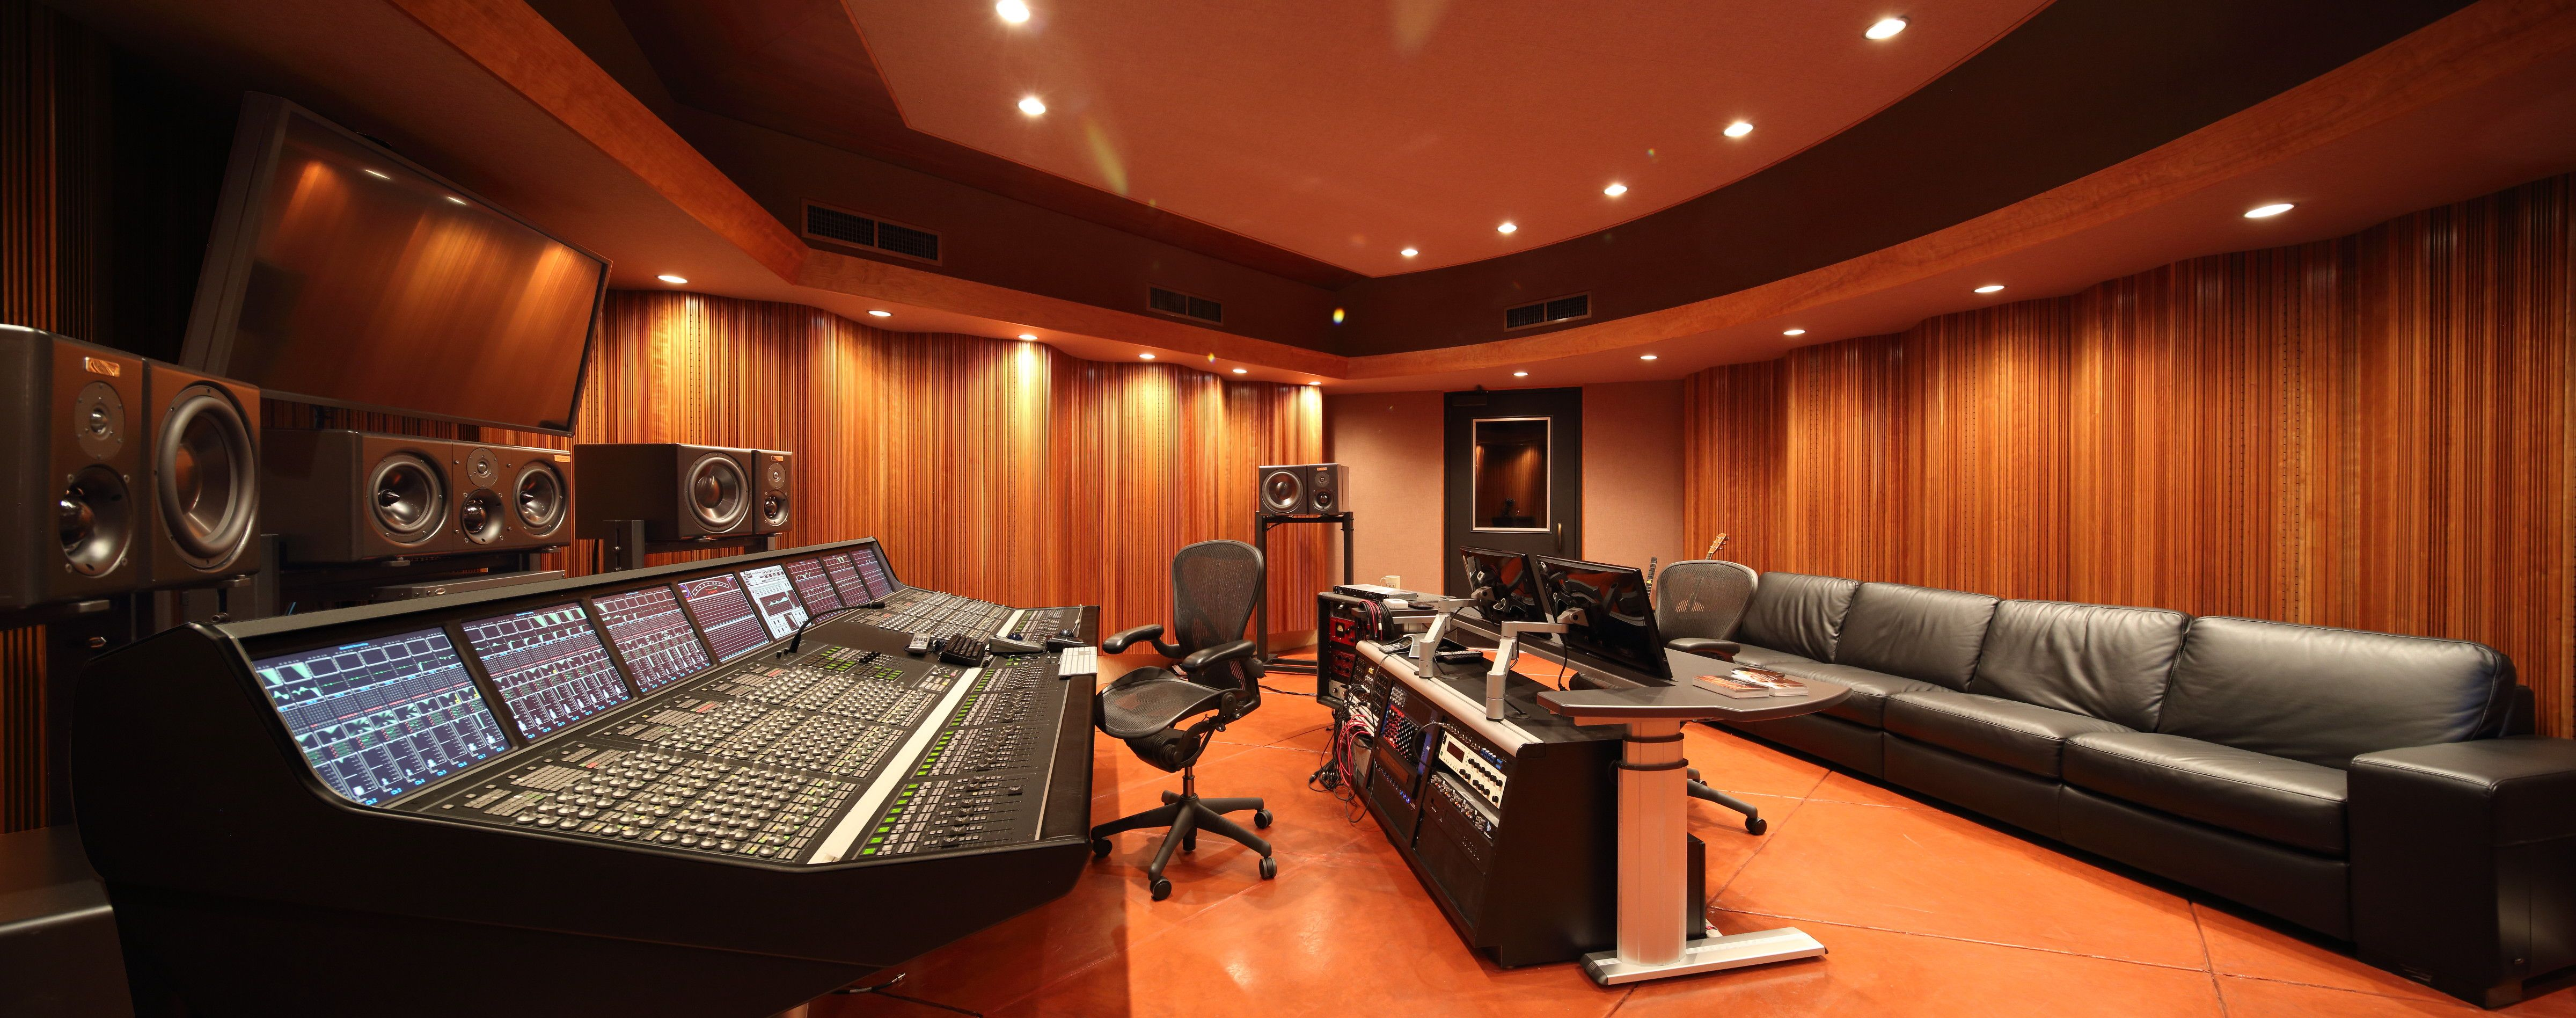 Fine 17 Best Images About Studio Design On Pinterest Audio Mastering Largest Home Design Picture Inspirations Pitcheantrous